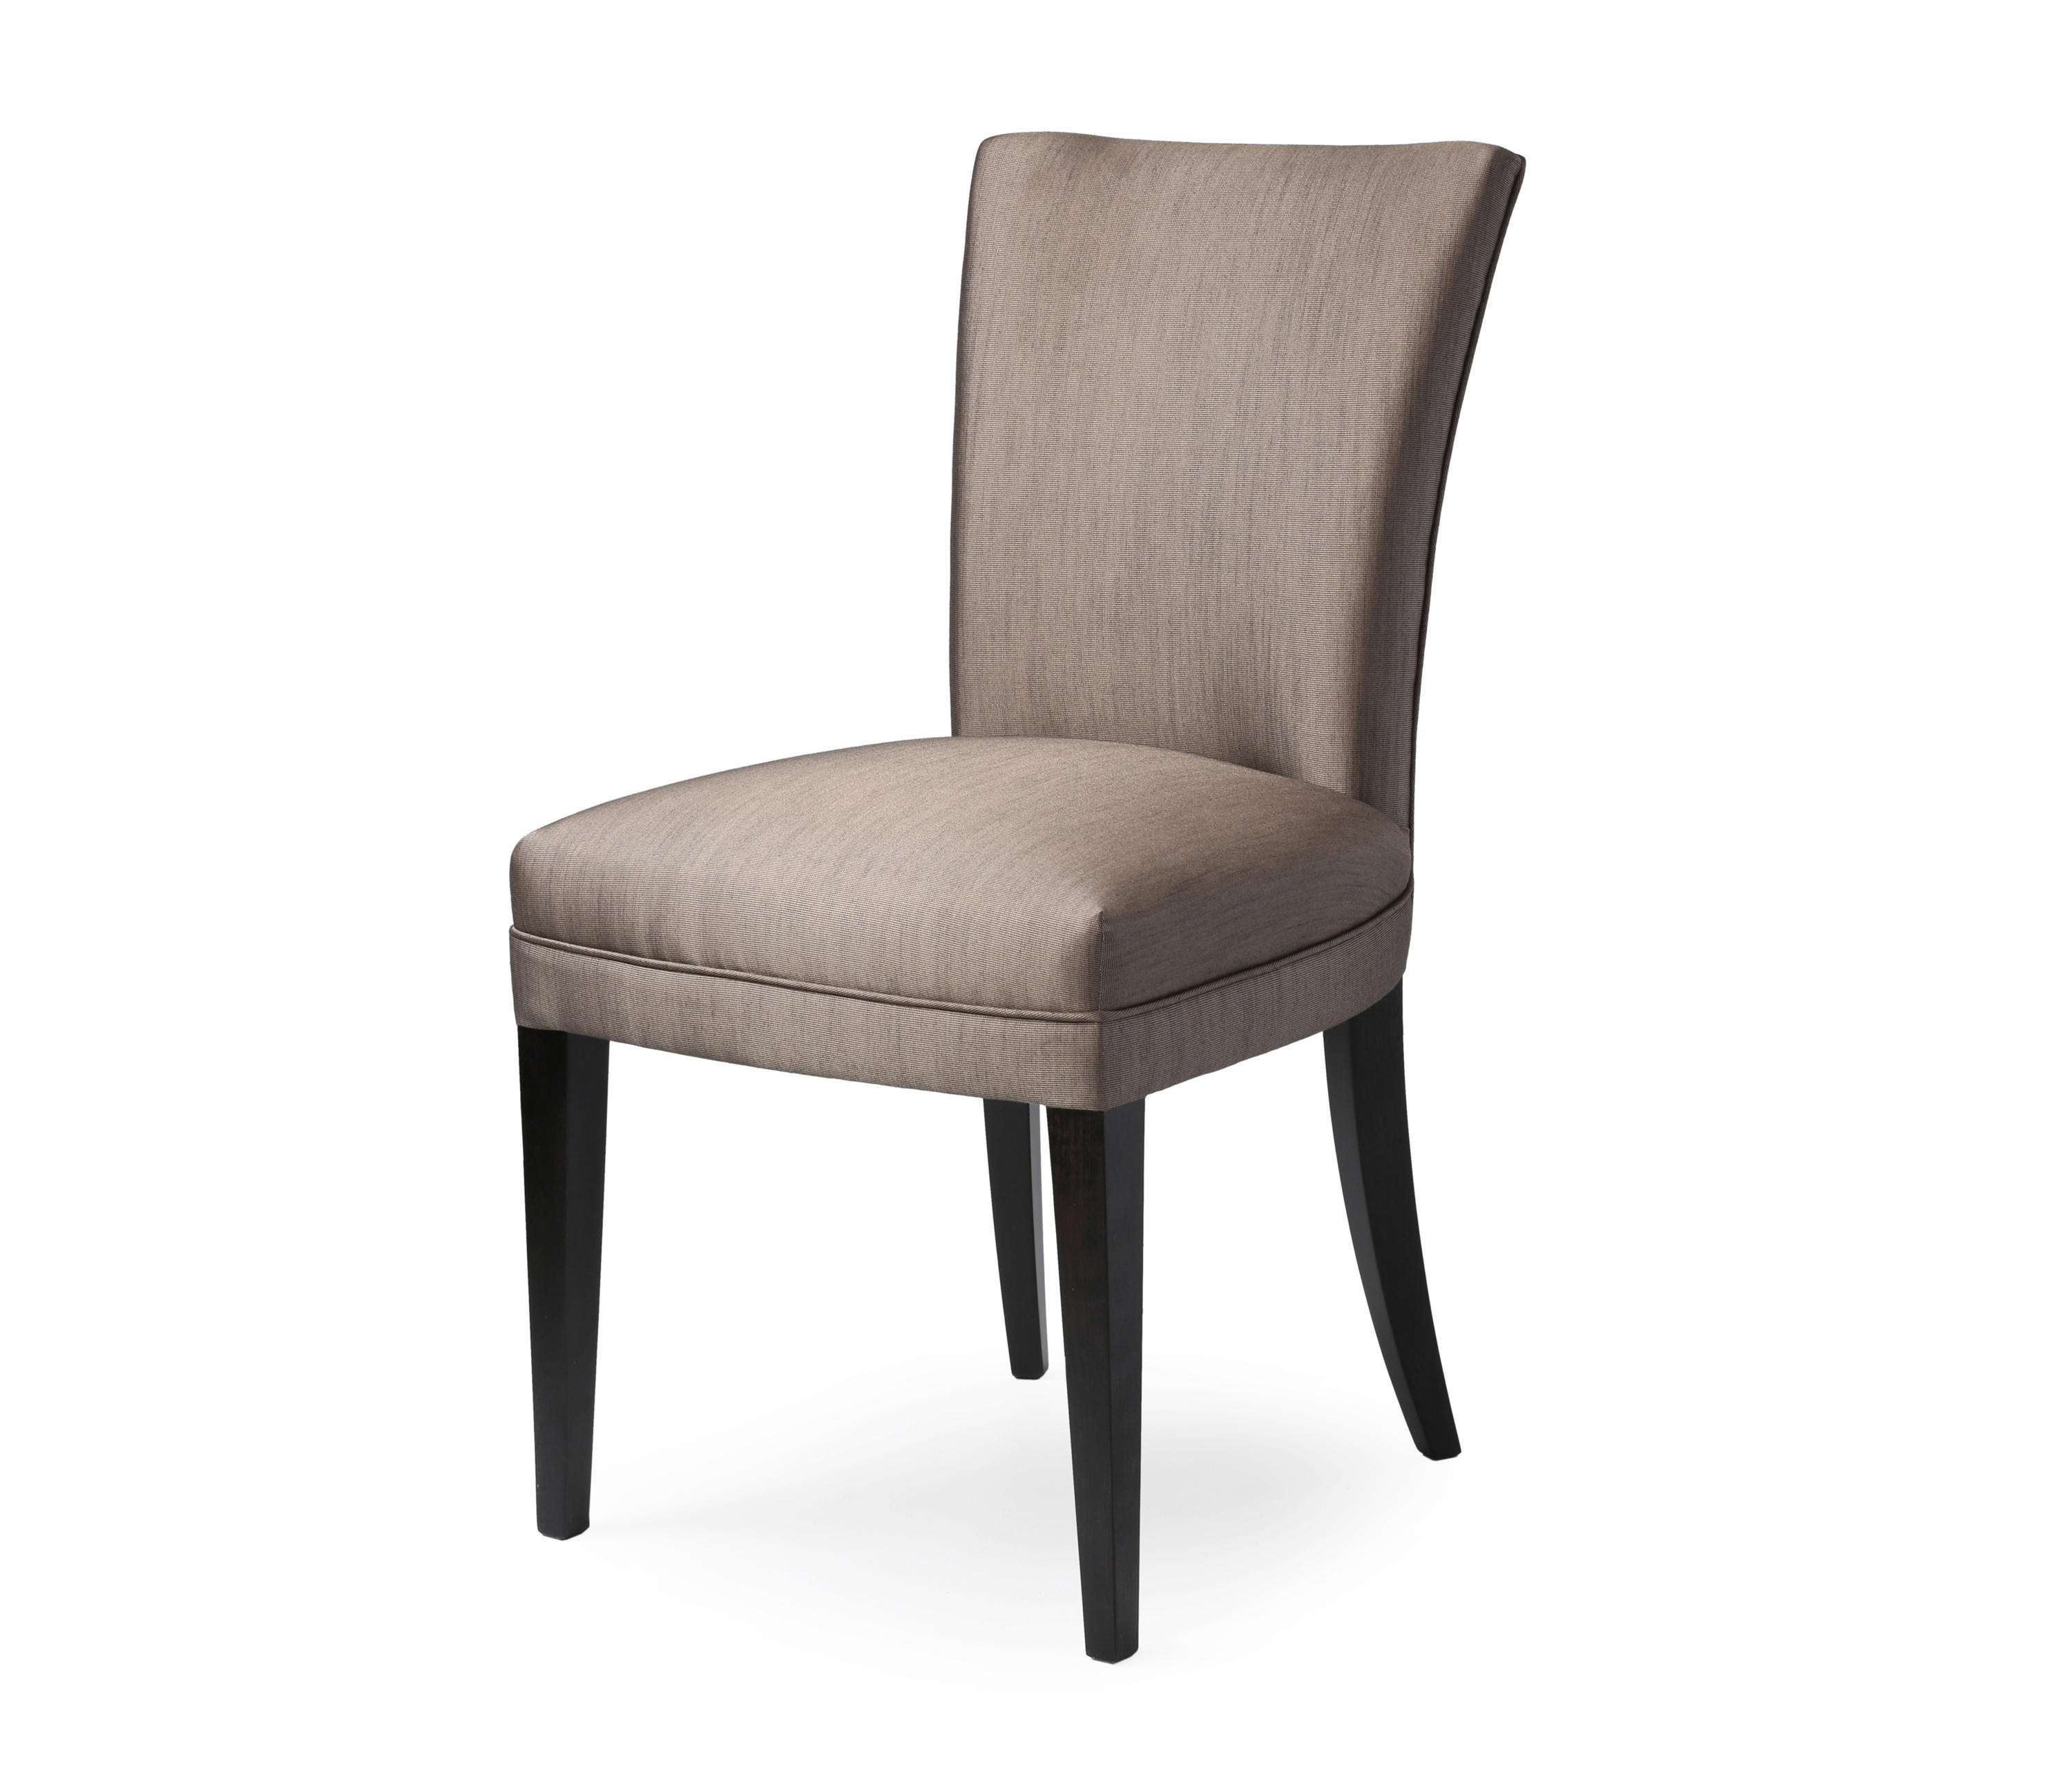 Paris Dining Chair By The Sofa U0026 Chair Company Ltd | Restaurant Chairs ...